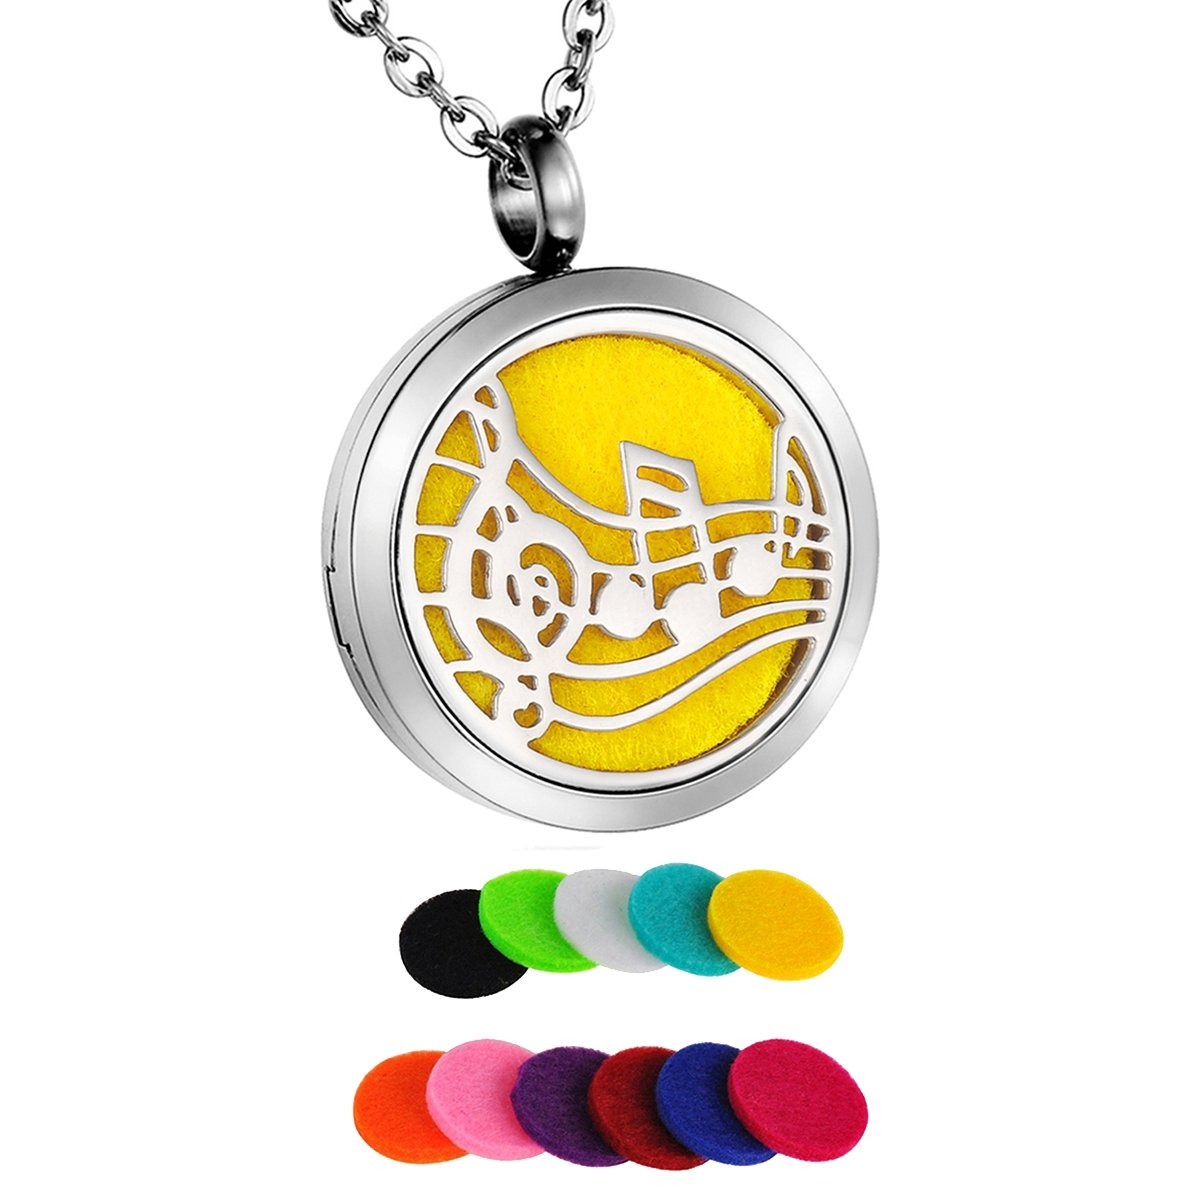 HooAMI Aromatherapy Essential Oil Diffuser Necklace - Stainless Steel Locket Pendant TY BETY104746-M